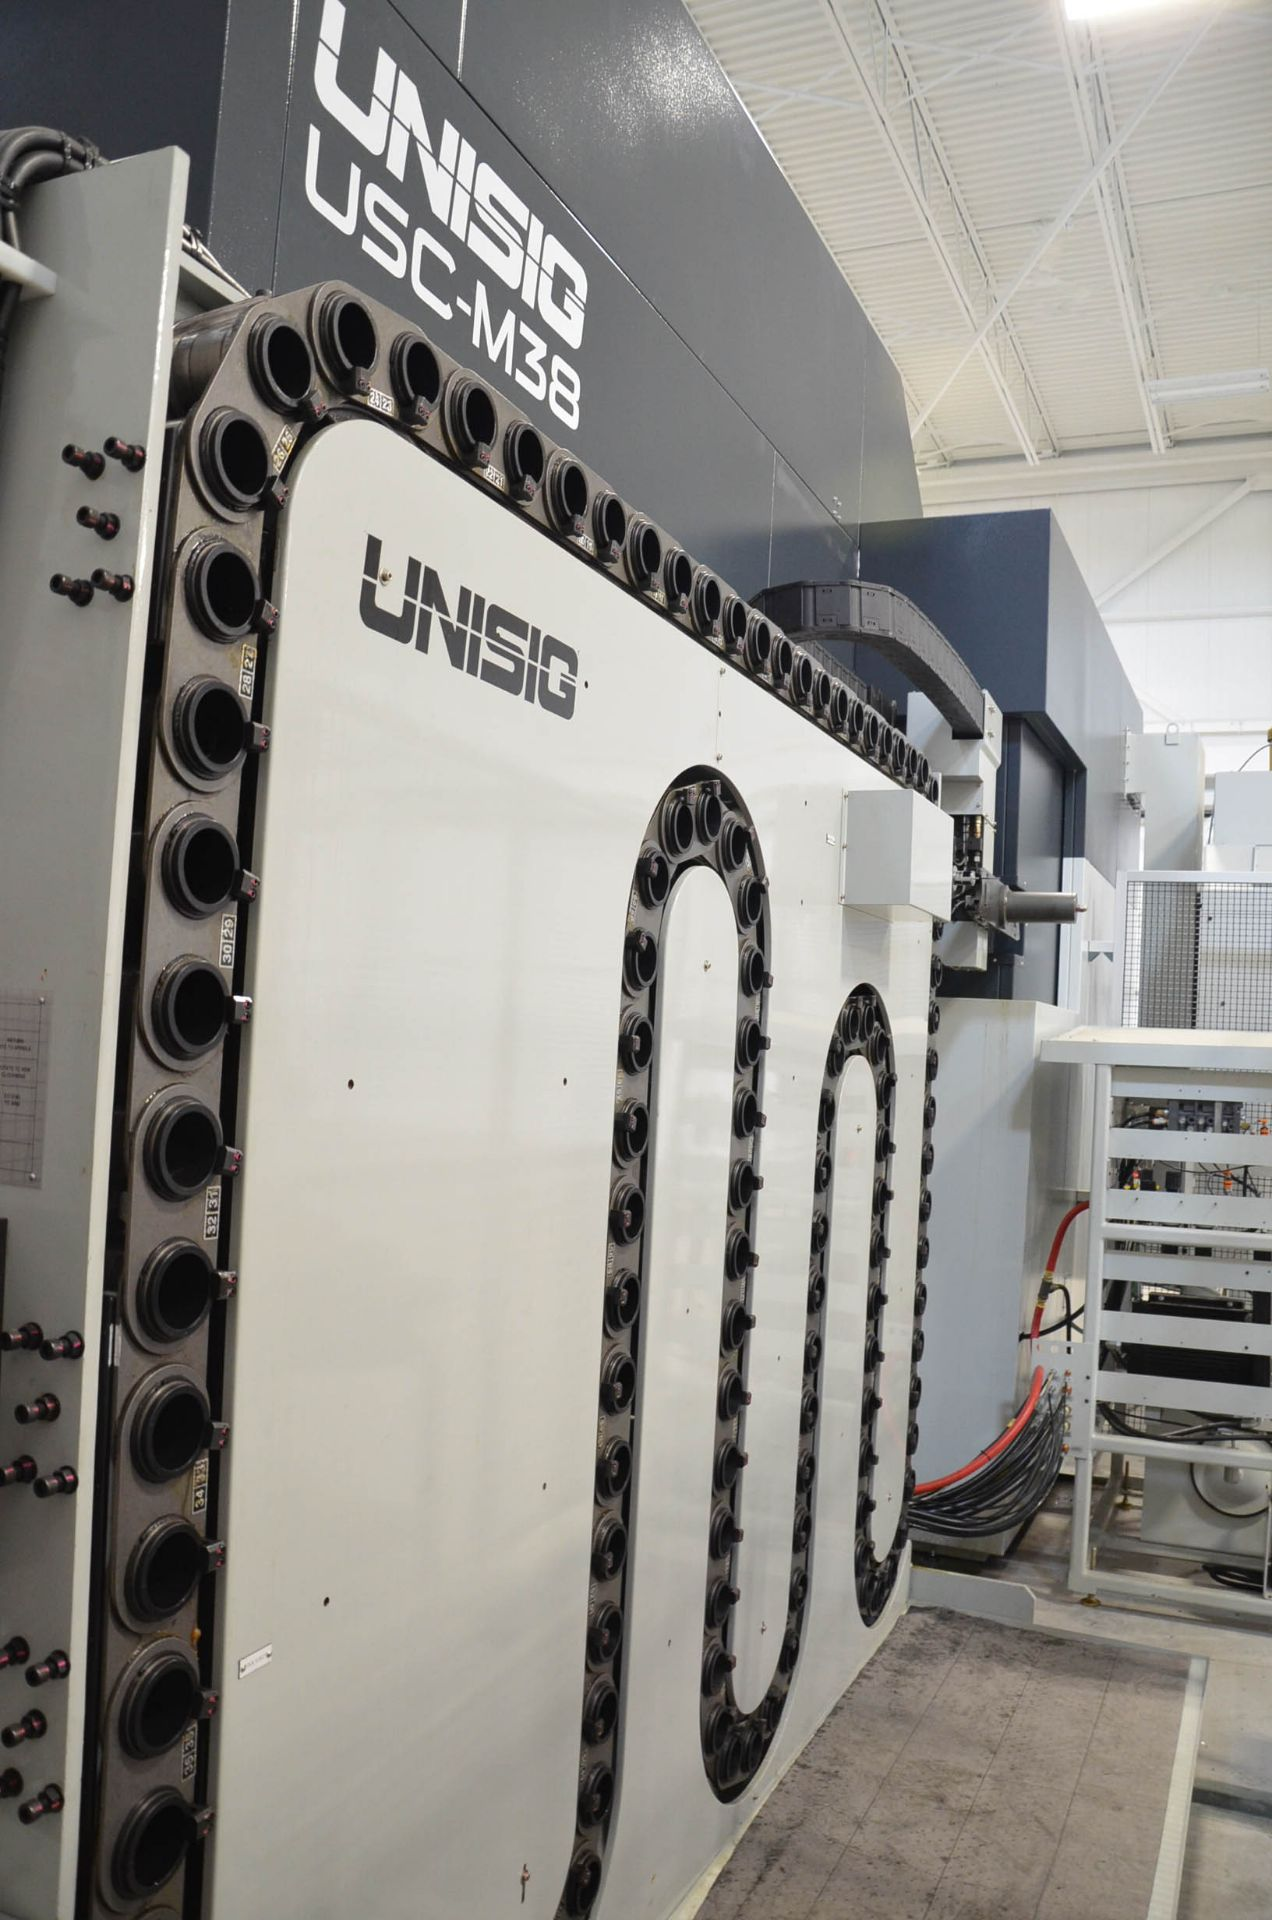 UNISIG (2020) USC-M38 5-AXIS COMBINATION CNC GUN DRILLING AND MILLING MACHINE WITH HEIDENHAIN ITNC - Image 14 of 17